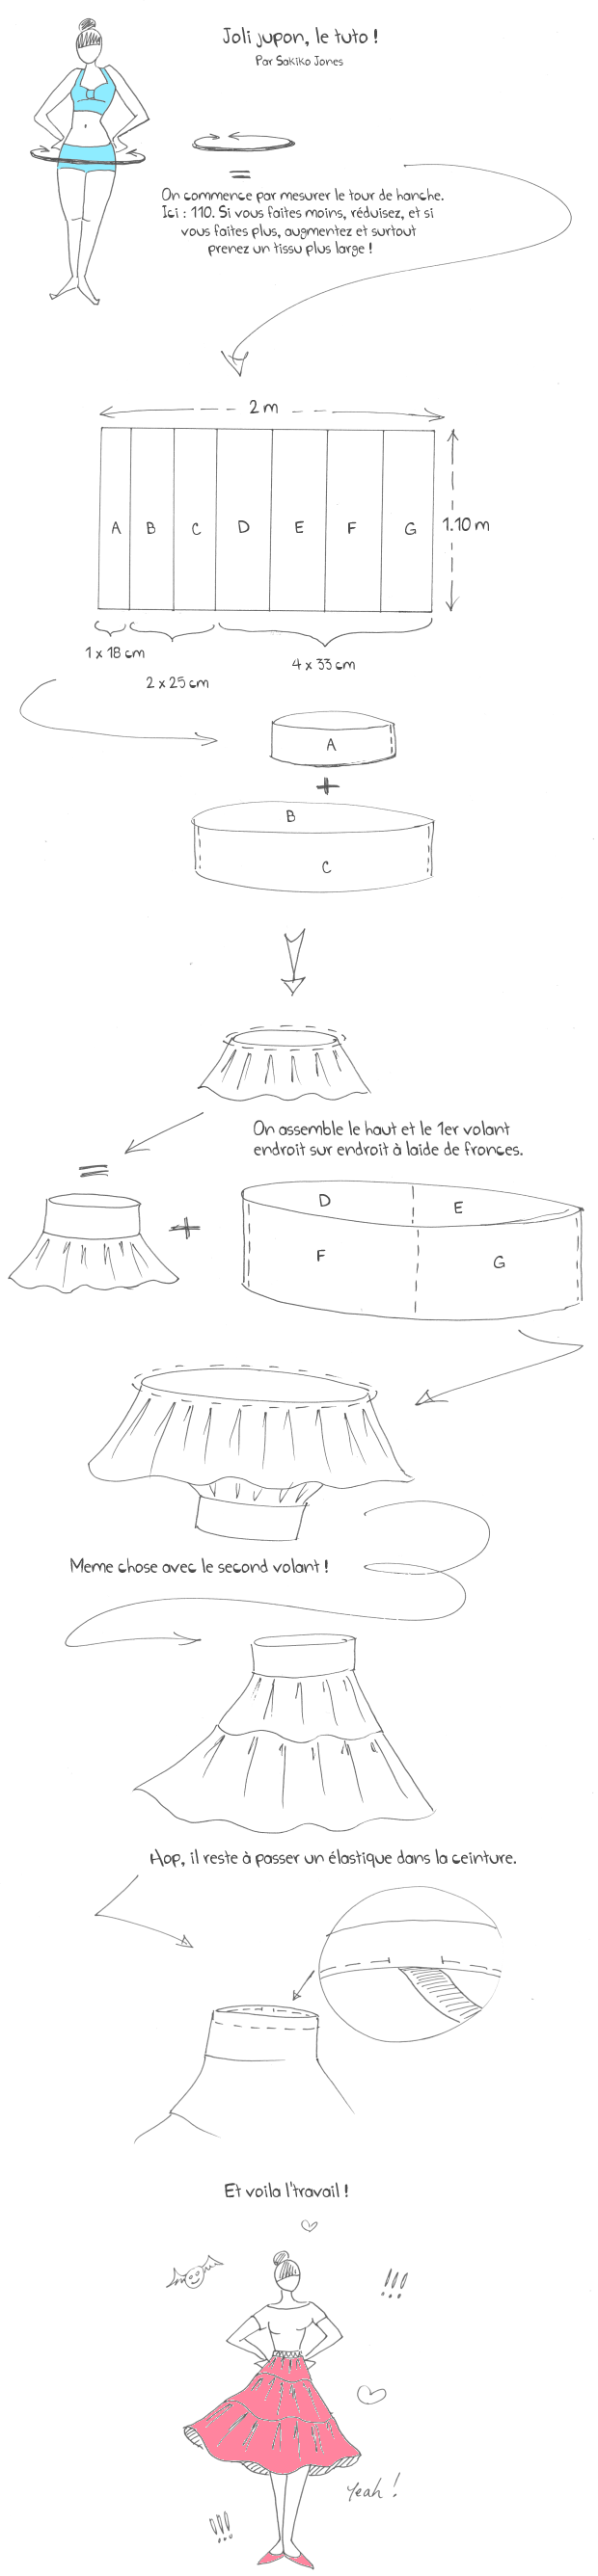 is a skirt I definitely need to make! I'm glad I understood this even though the instructions are in French